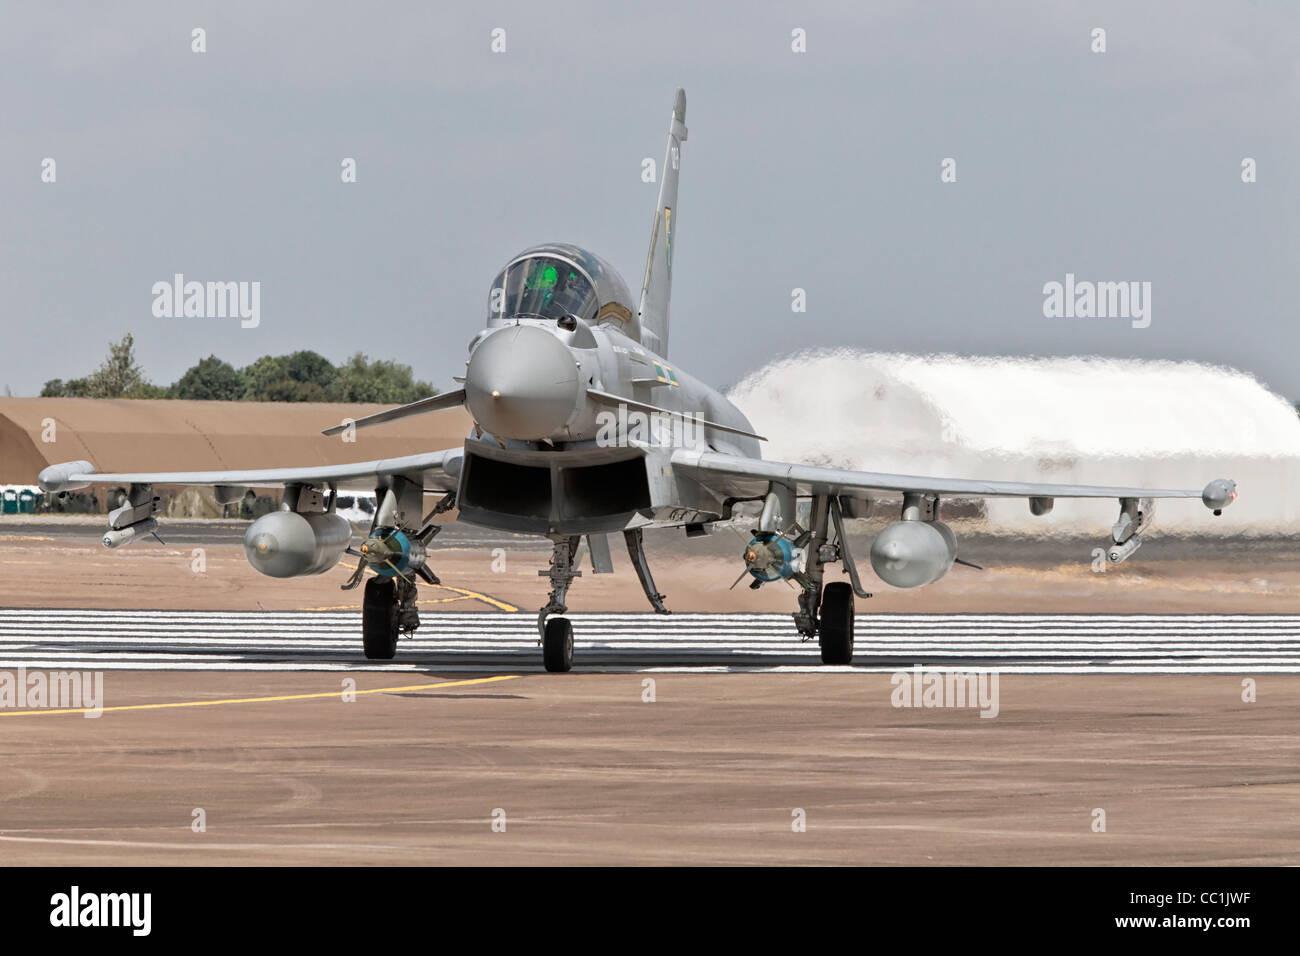 An RAF Bae Systems Typhoon fighter - Stock Image